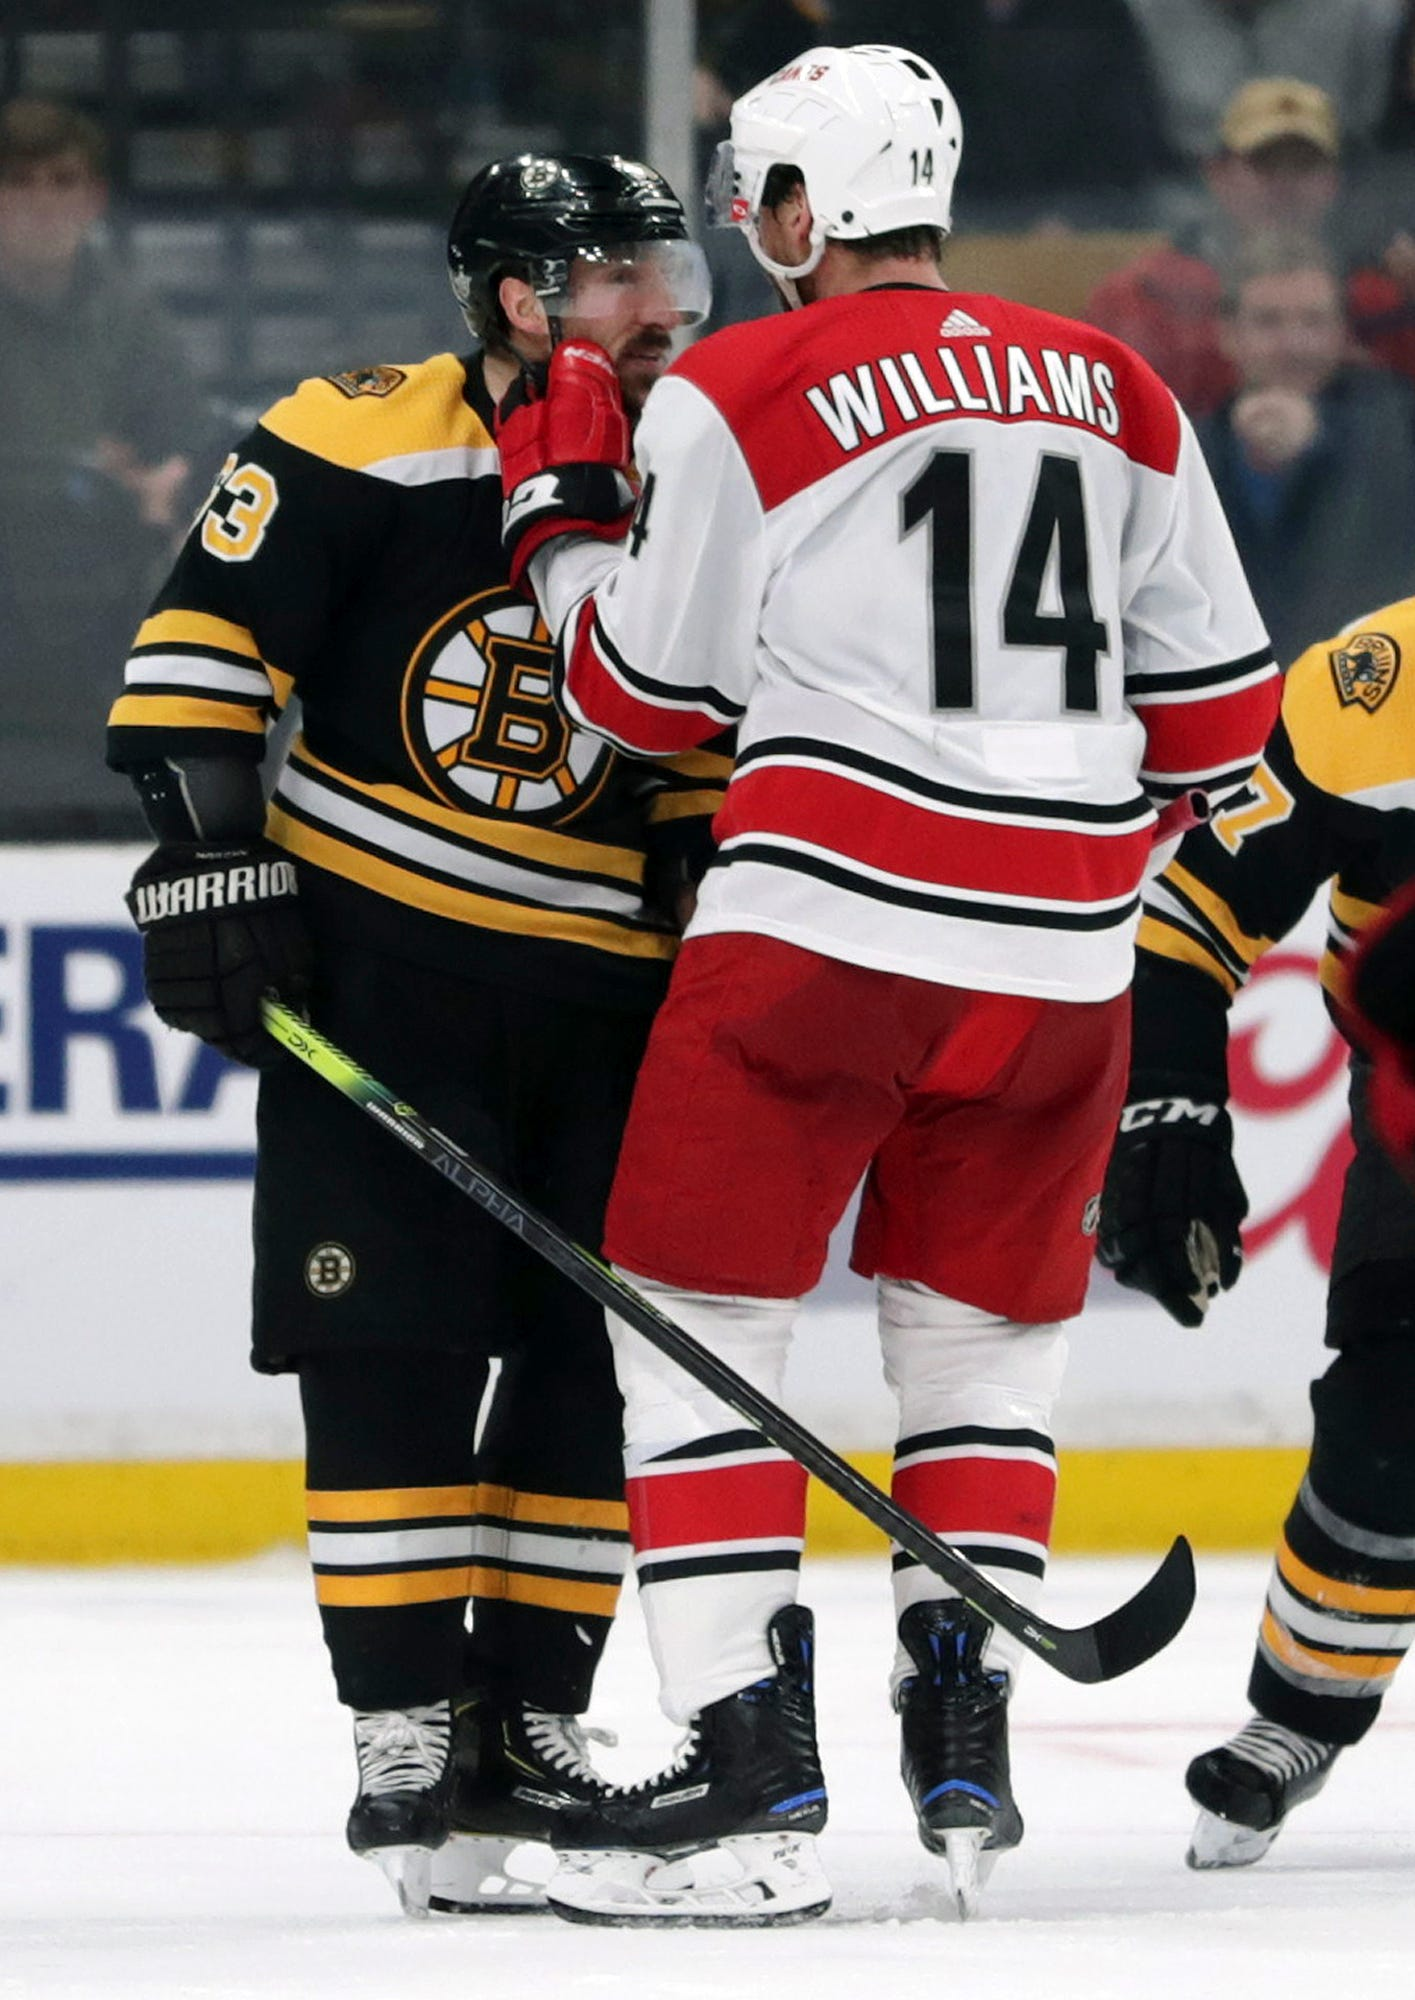 Brad Marchand draws controversial penalty on Justin Williams, mocks Hurricanes captain